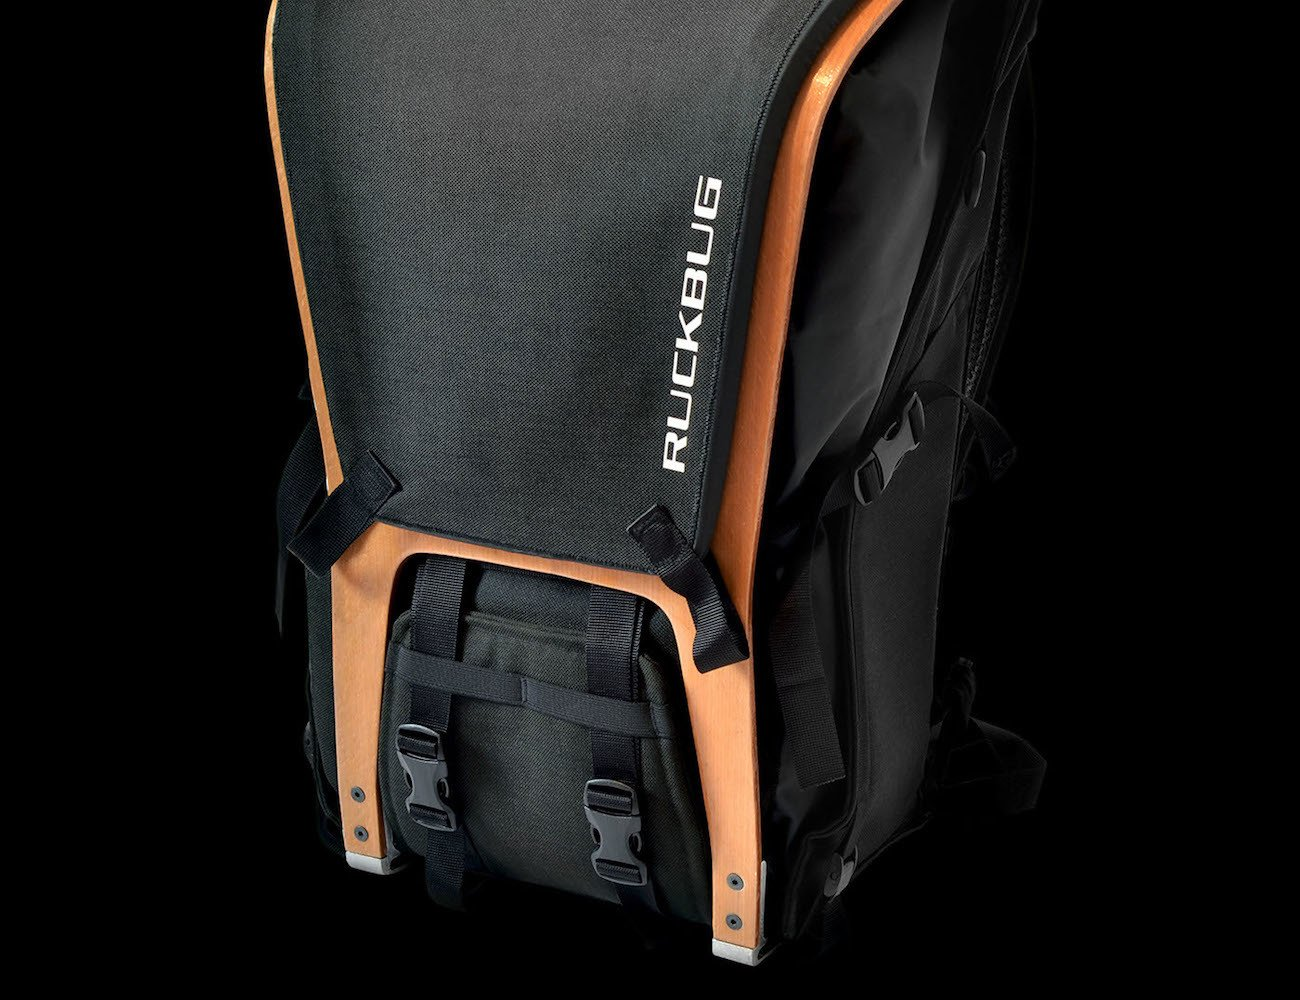 Ruckbug External Frame Backpack